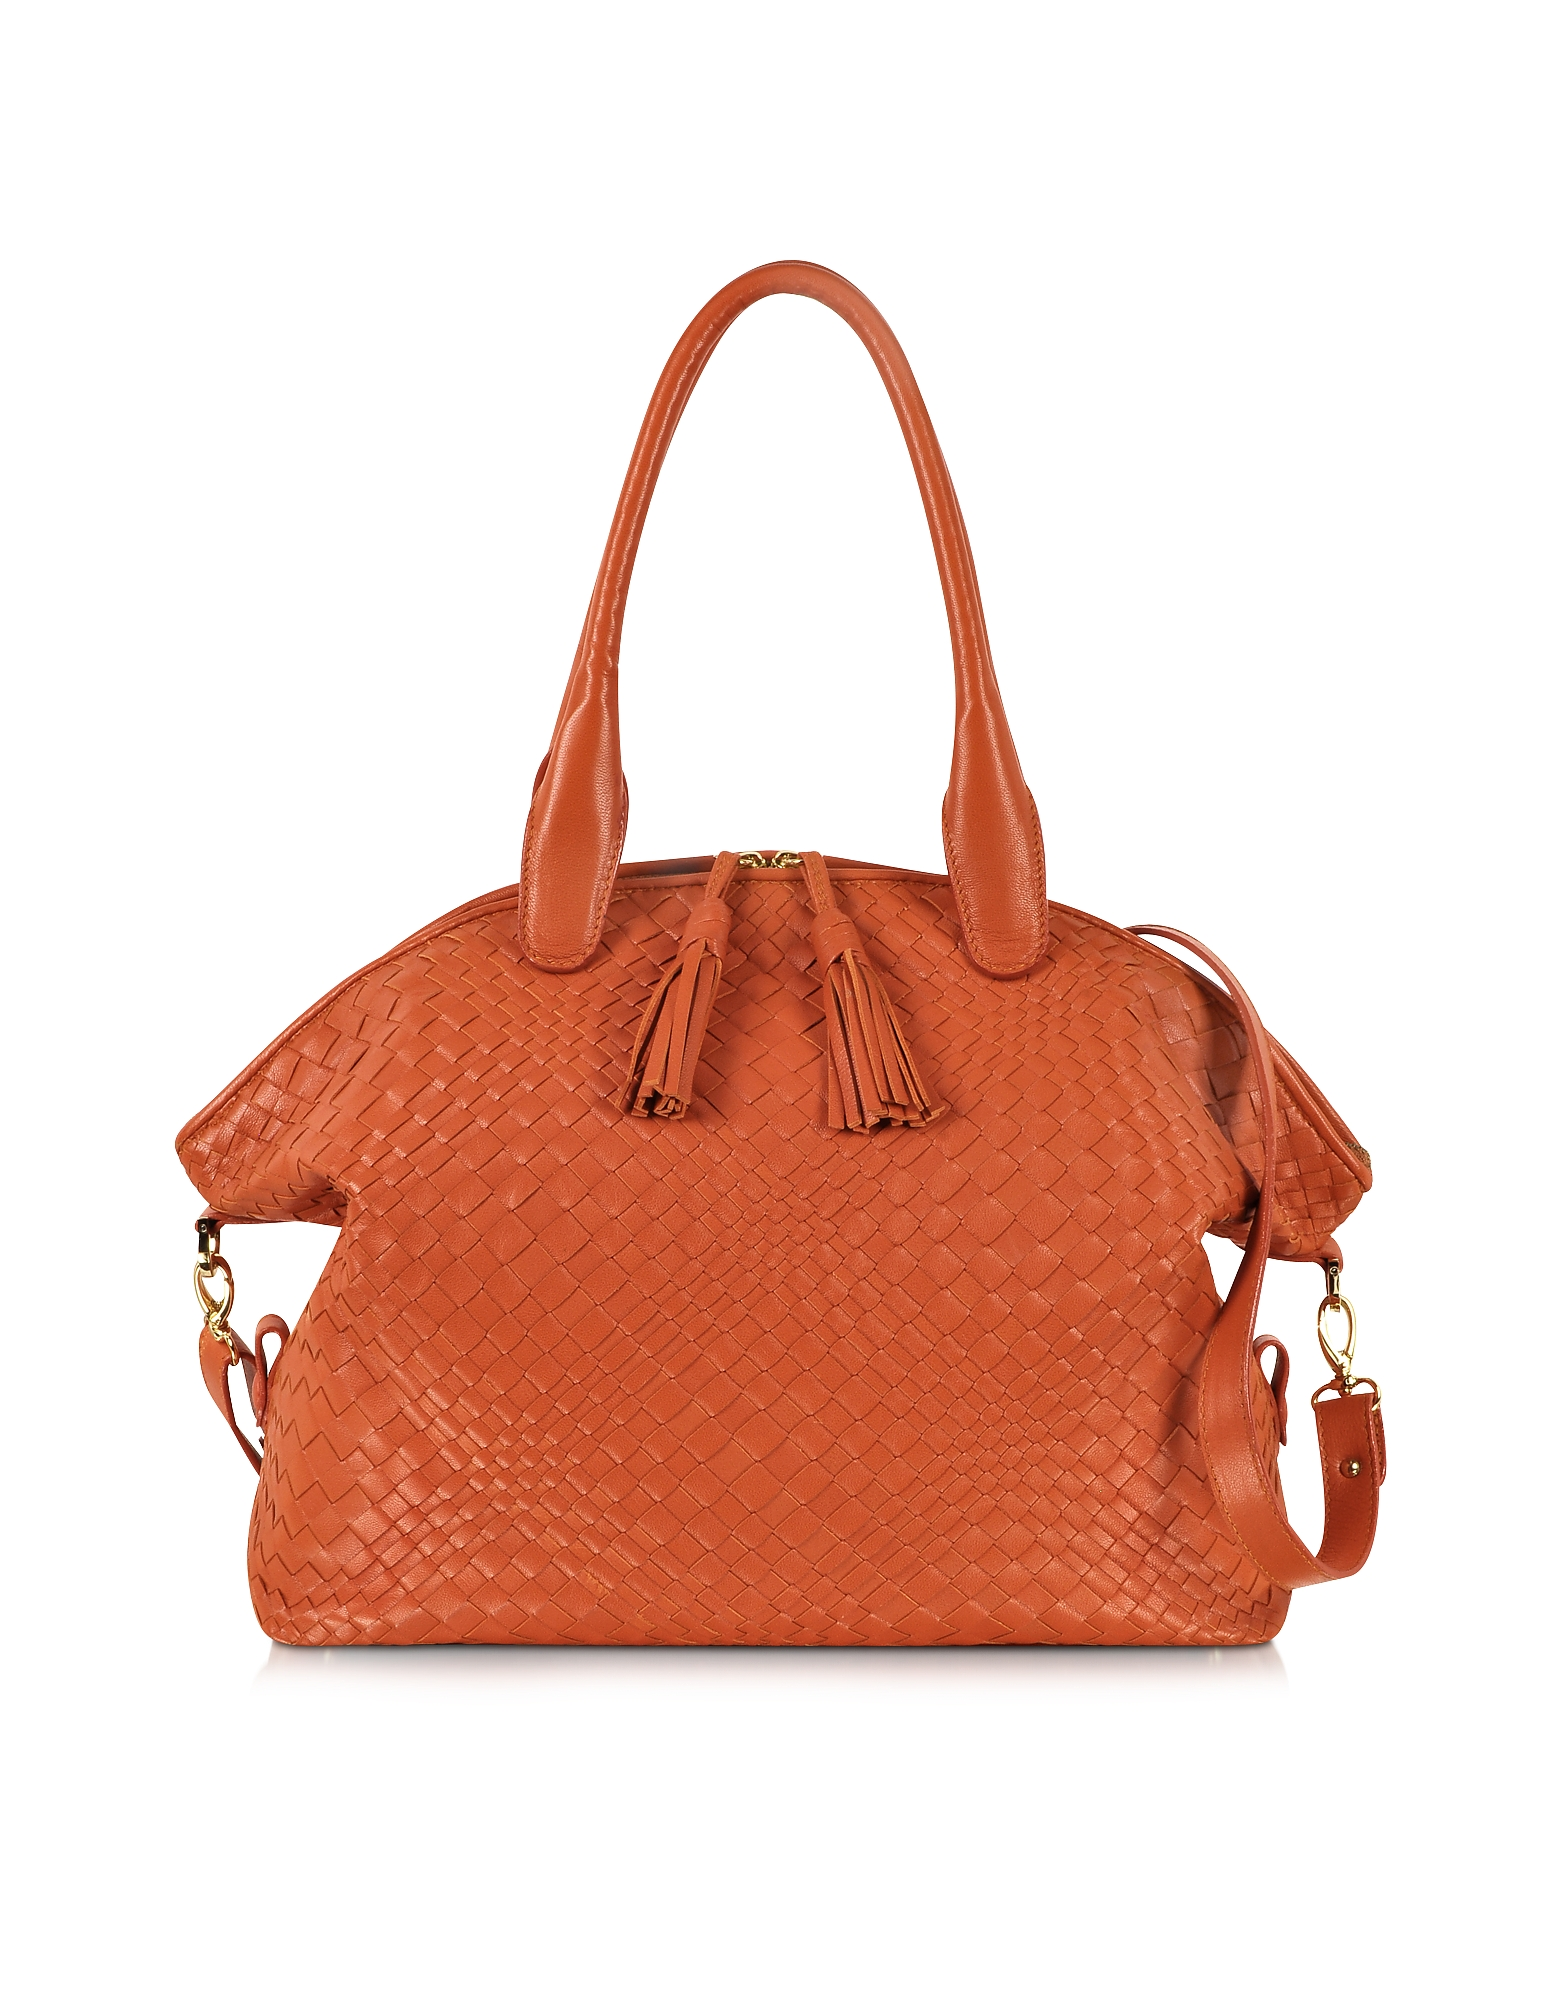 Forzieri Designer Handbags, Orange Woven Leather Bowler Bag (Luggage & Bags) photo